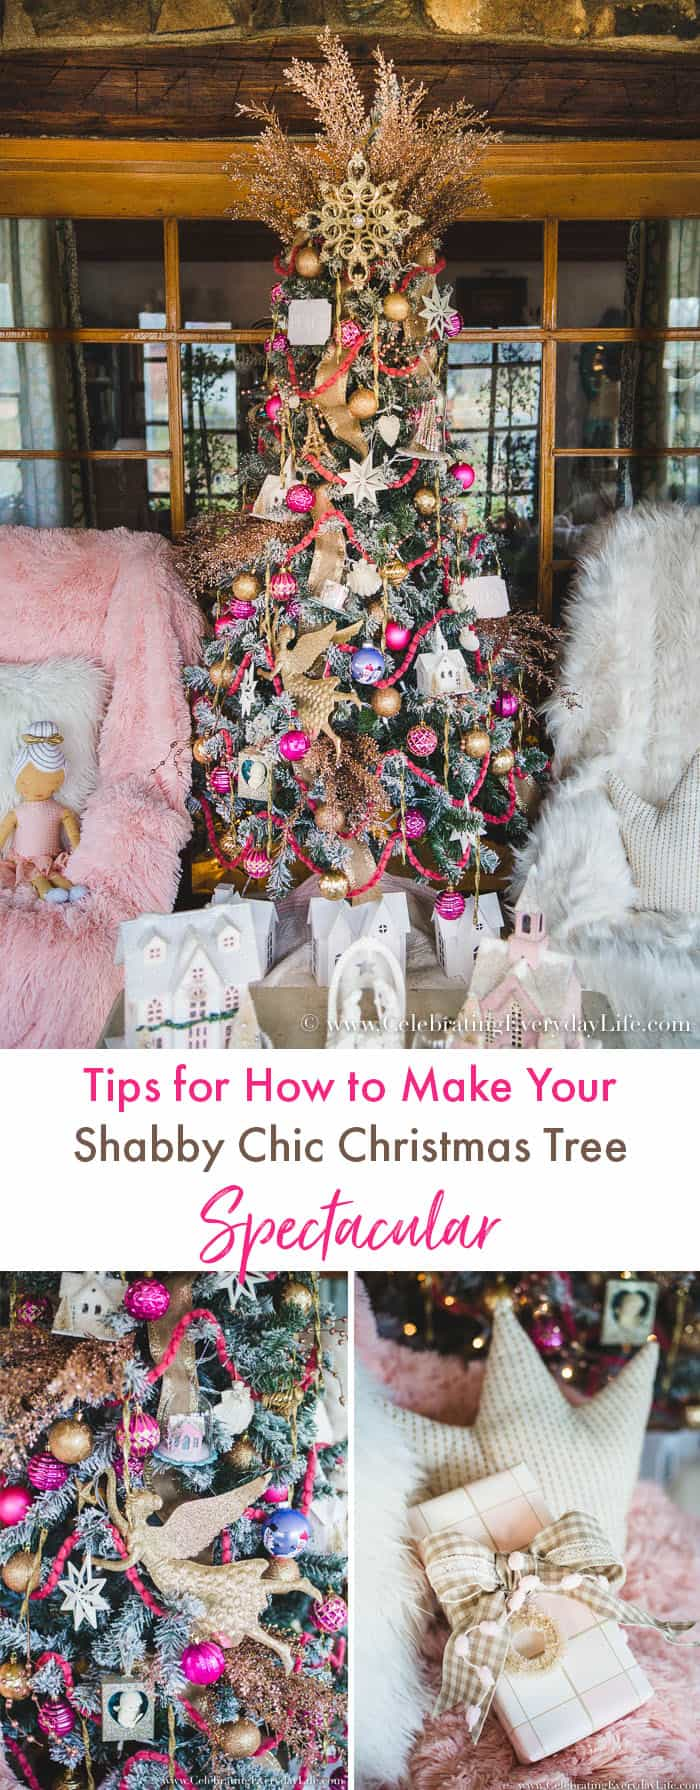 How to Make Your Pink & Gold Shabby Chic Christmas Tree Spectacular on a budget. Tips for mixing ornaments old and new, as well as store-bought & homemade!